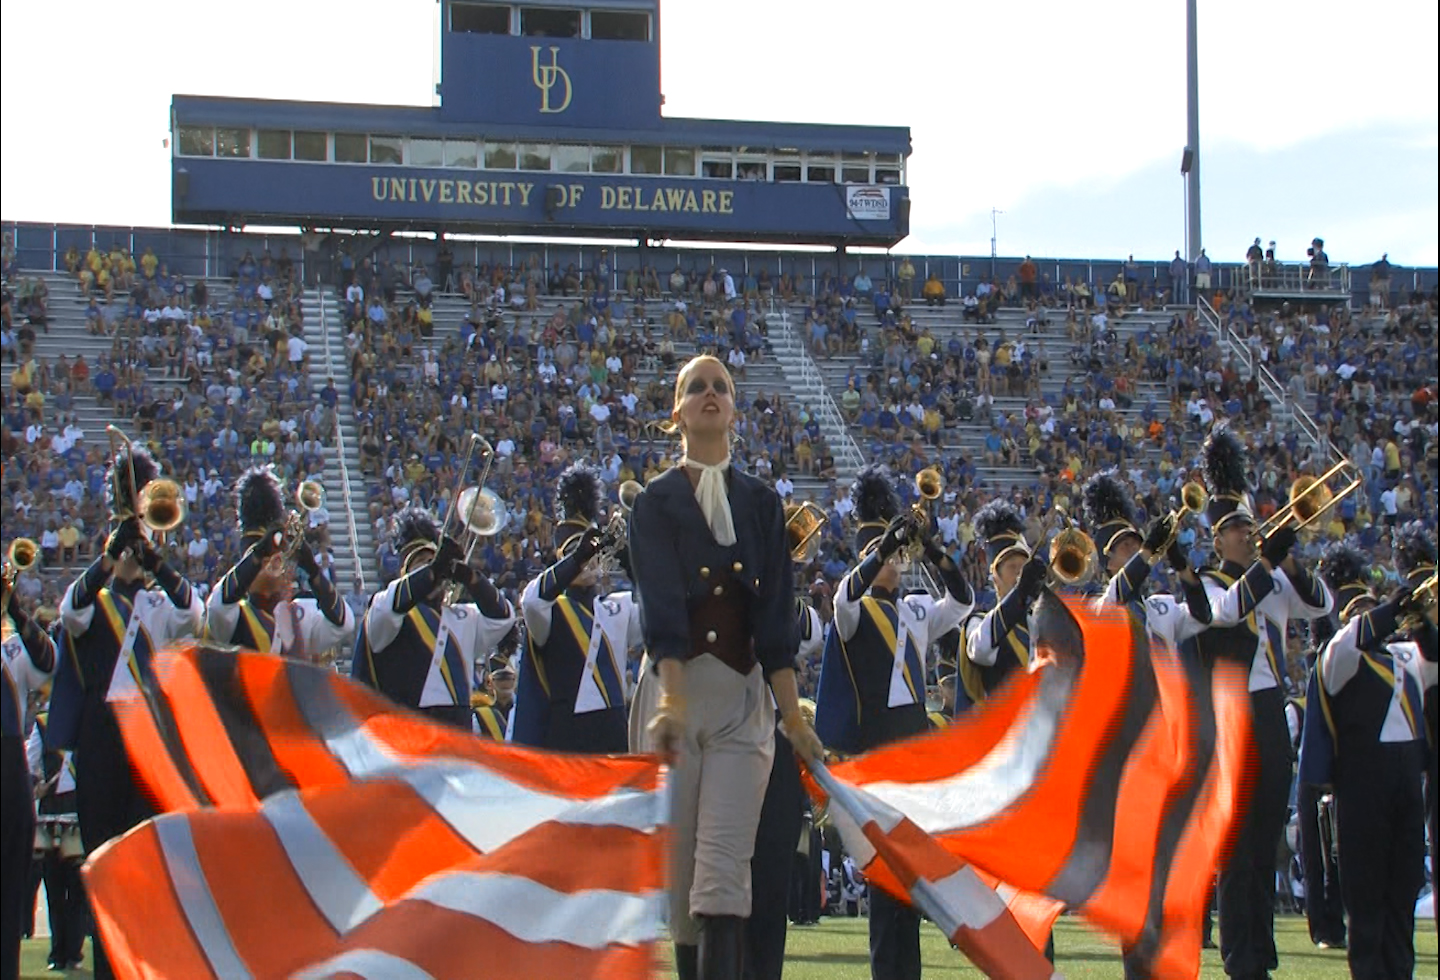 2013-udmb-video-yearbook